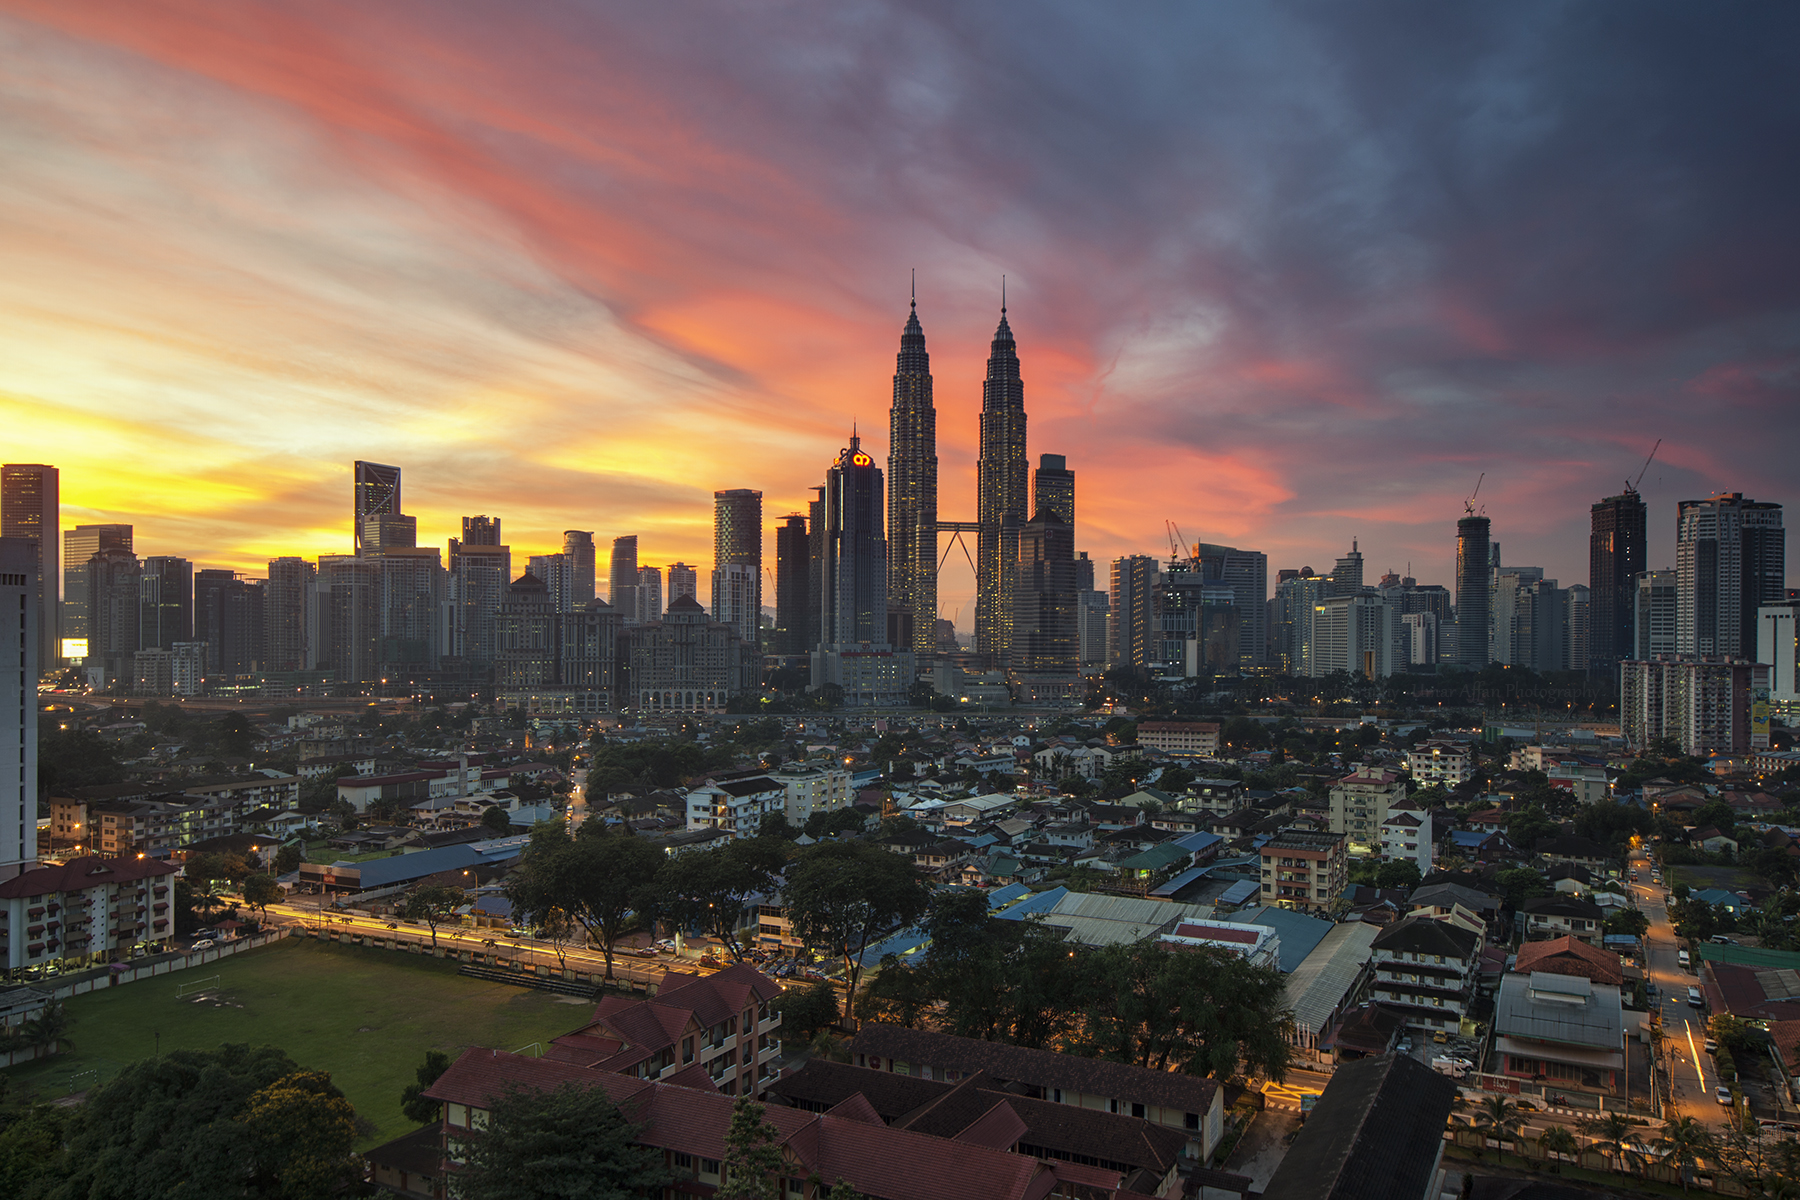 landscape view of the city of kuala lumpur at sunset